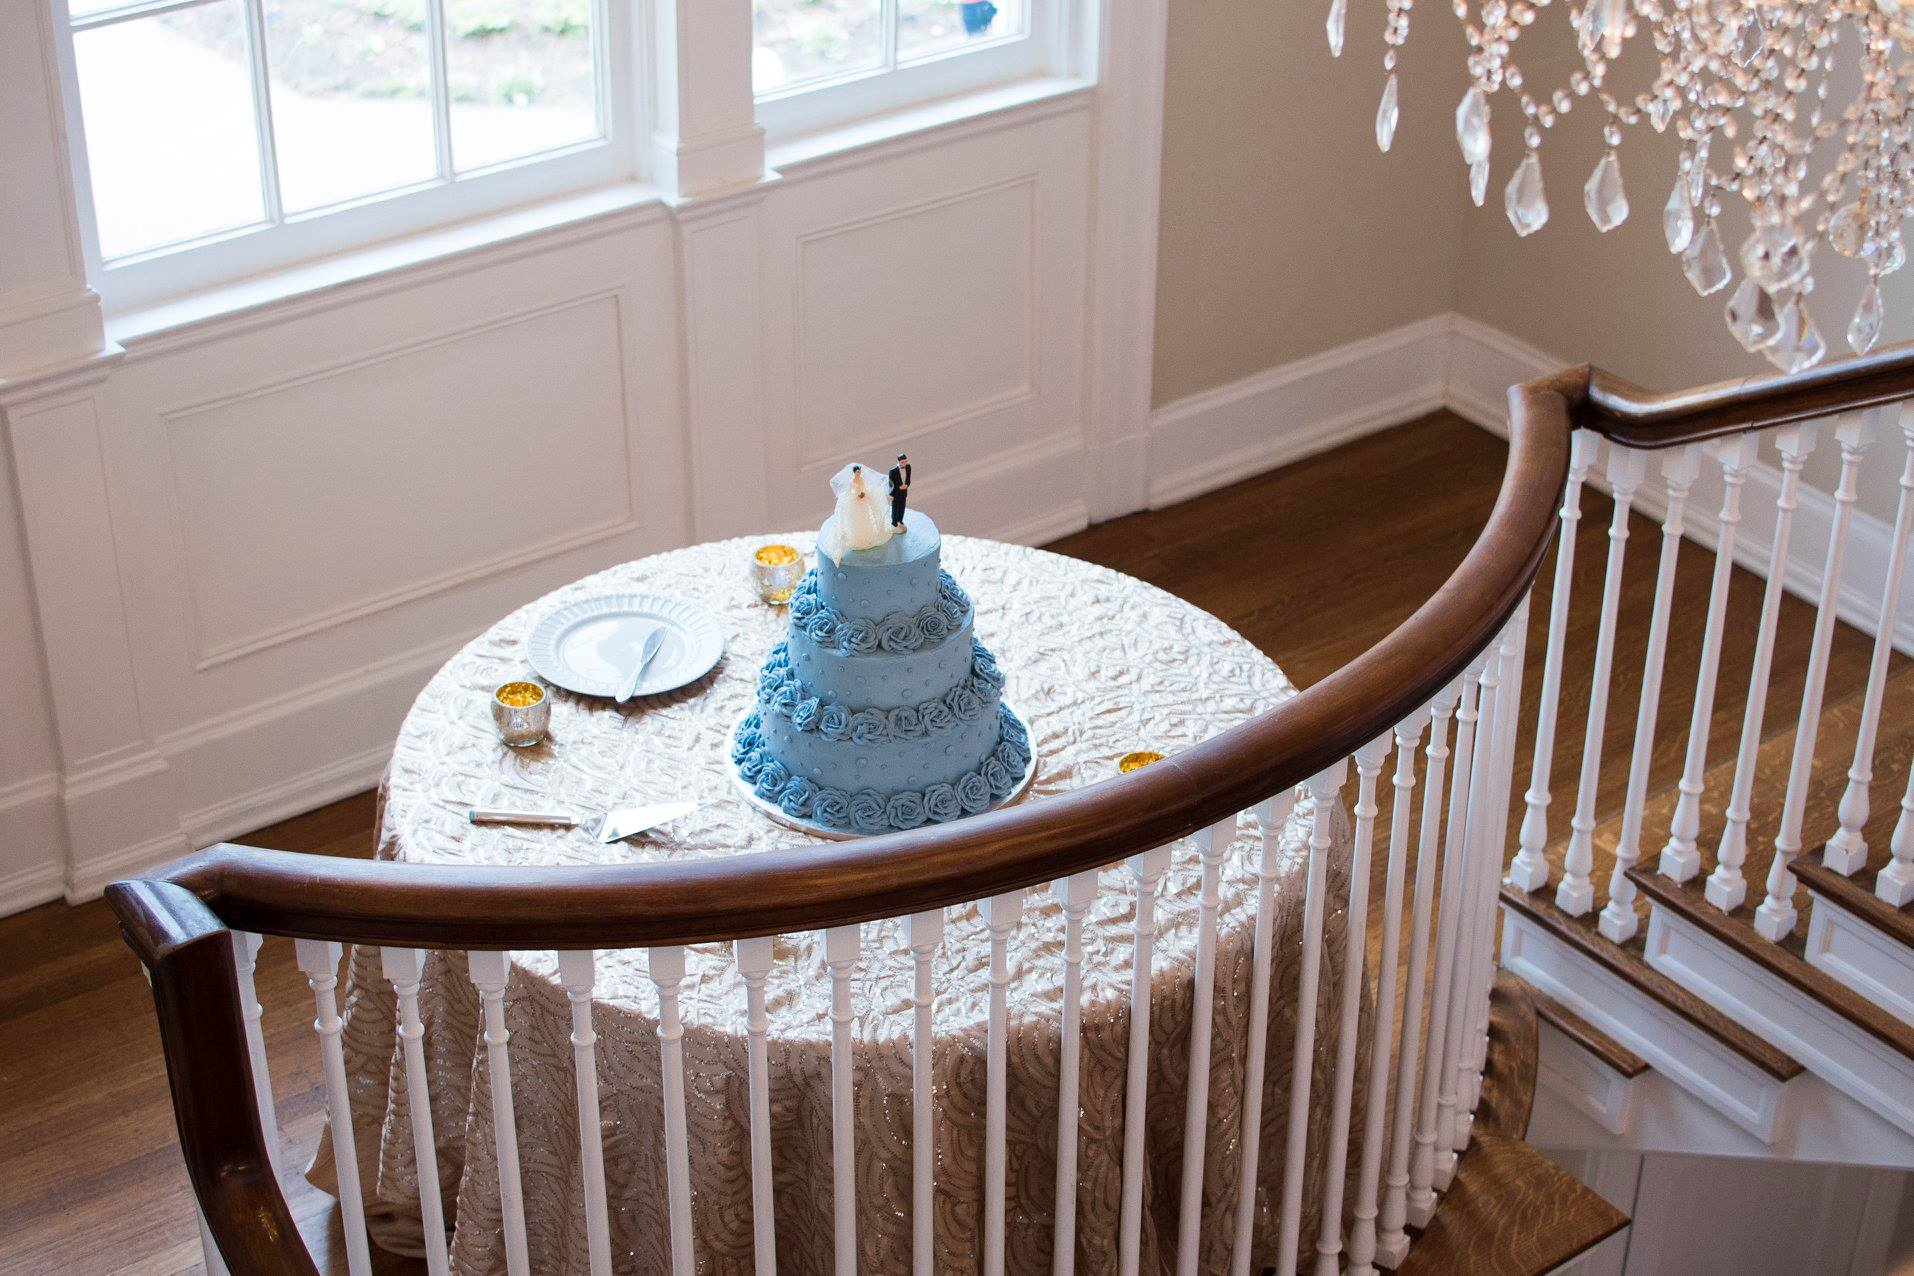 Amazing pale blue wedding cake from Publix bakery for wedding reception at Separk Mansion